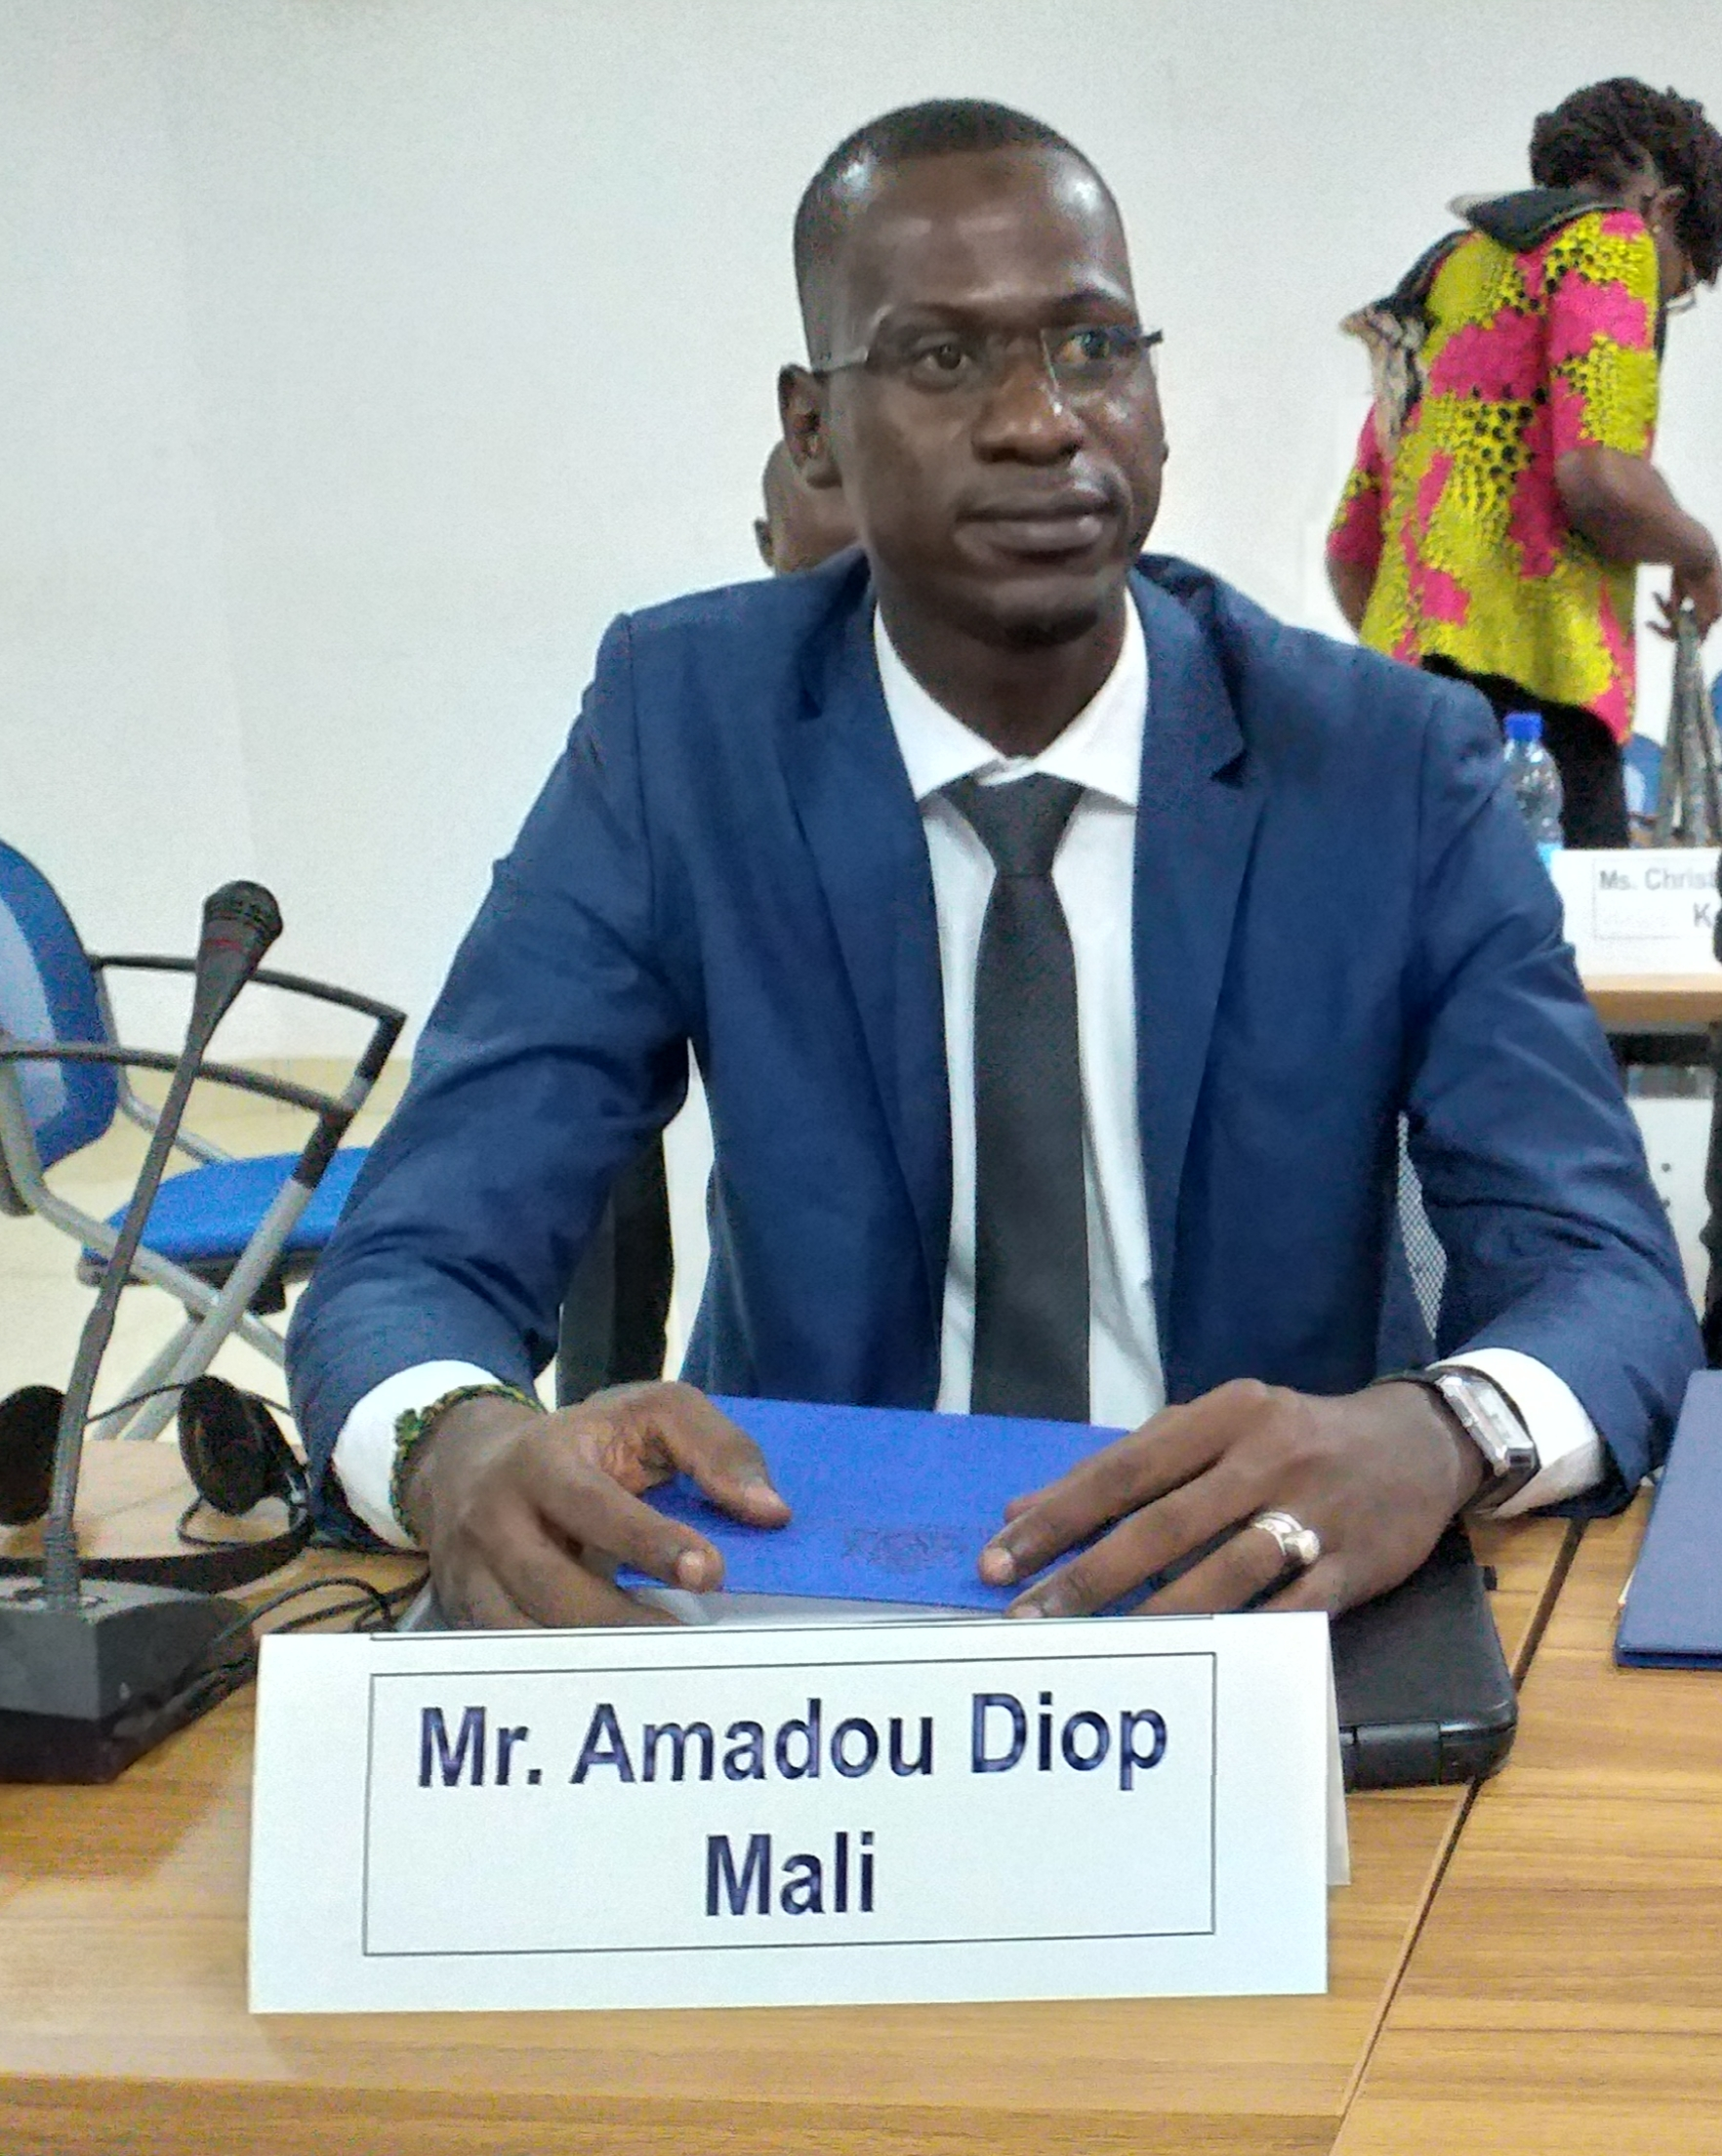 Mr. Amadou DIOP